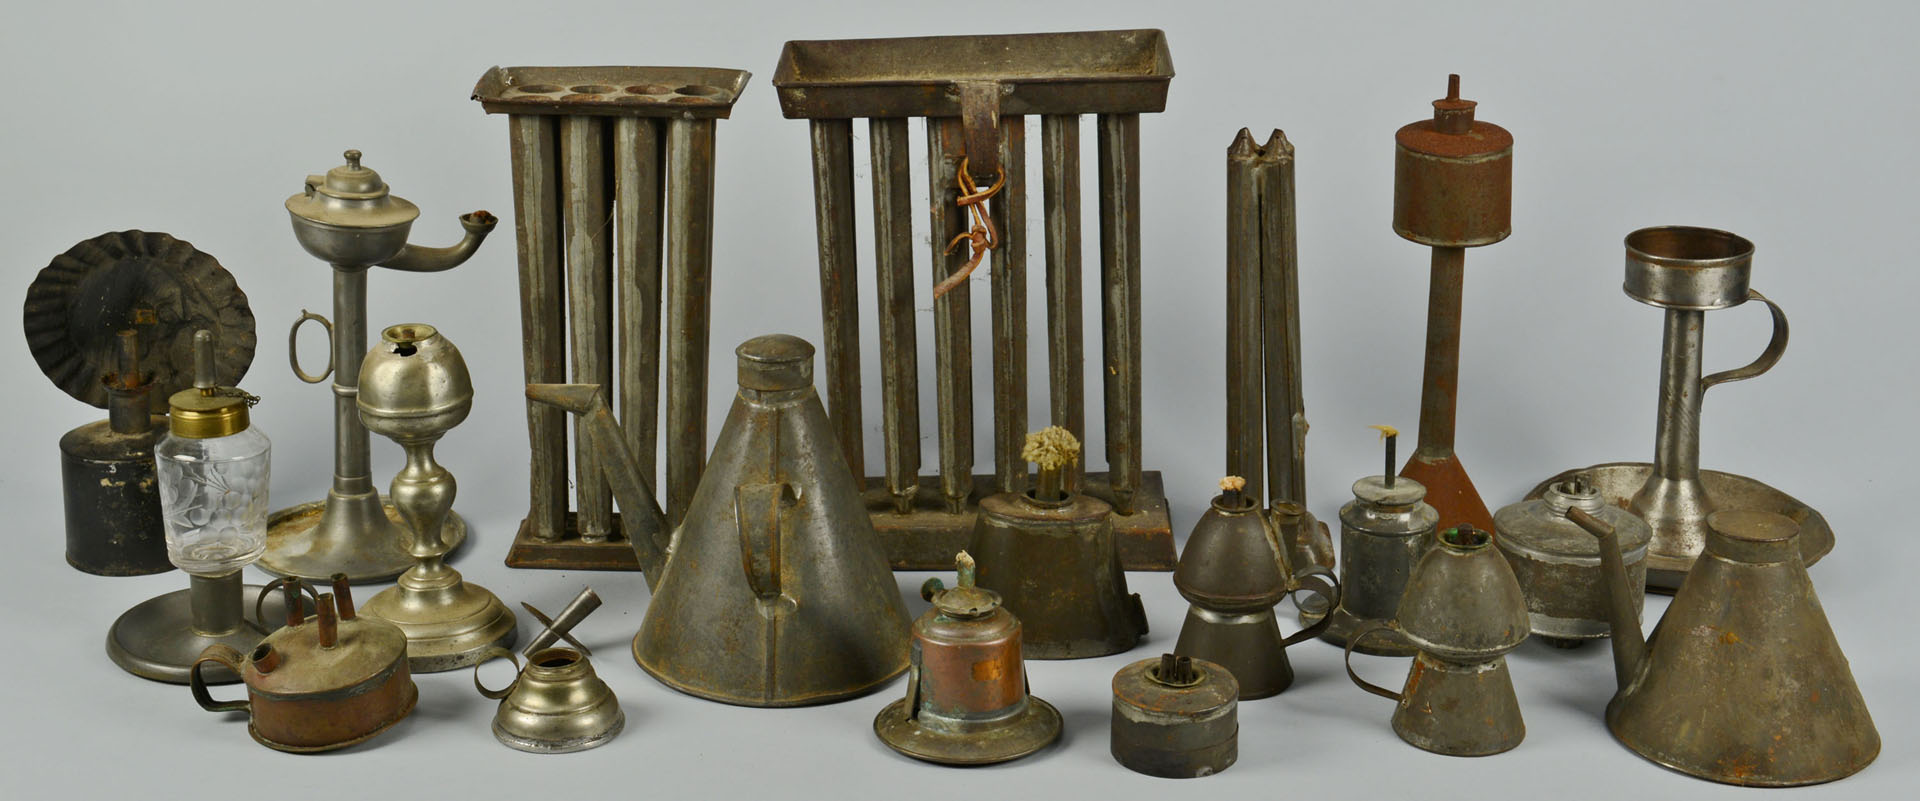 Lot 287: Large grouping of tin lighting related items